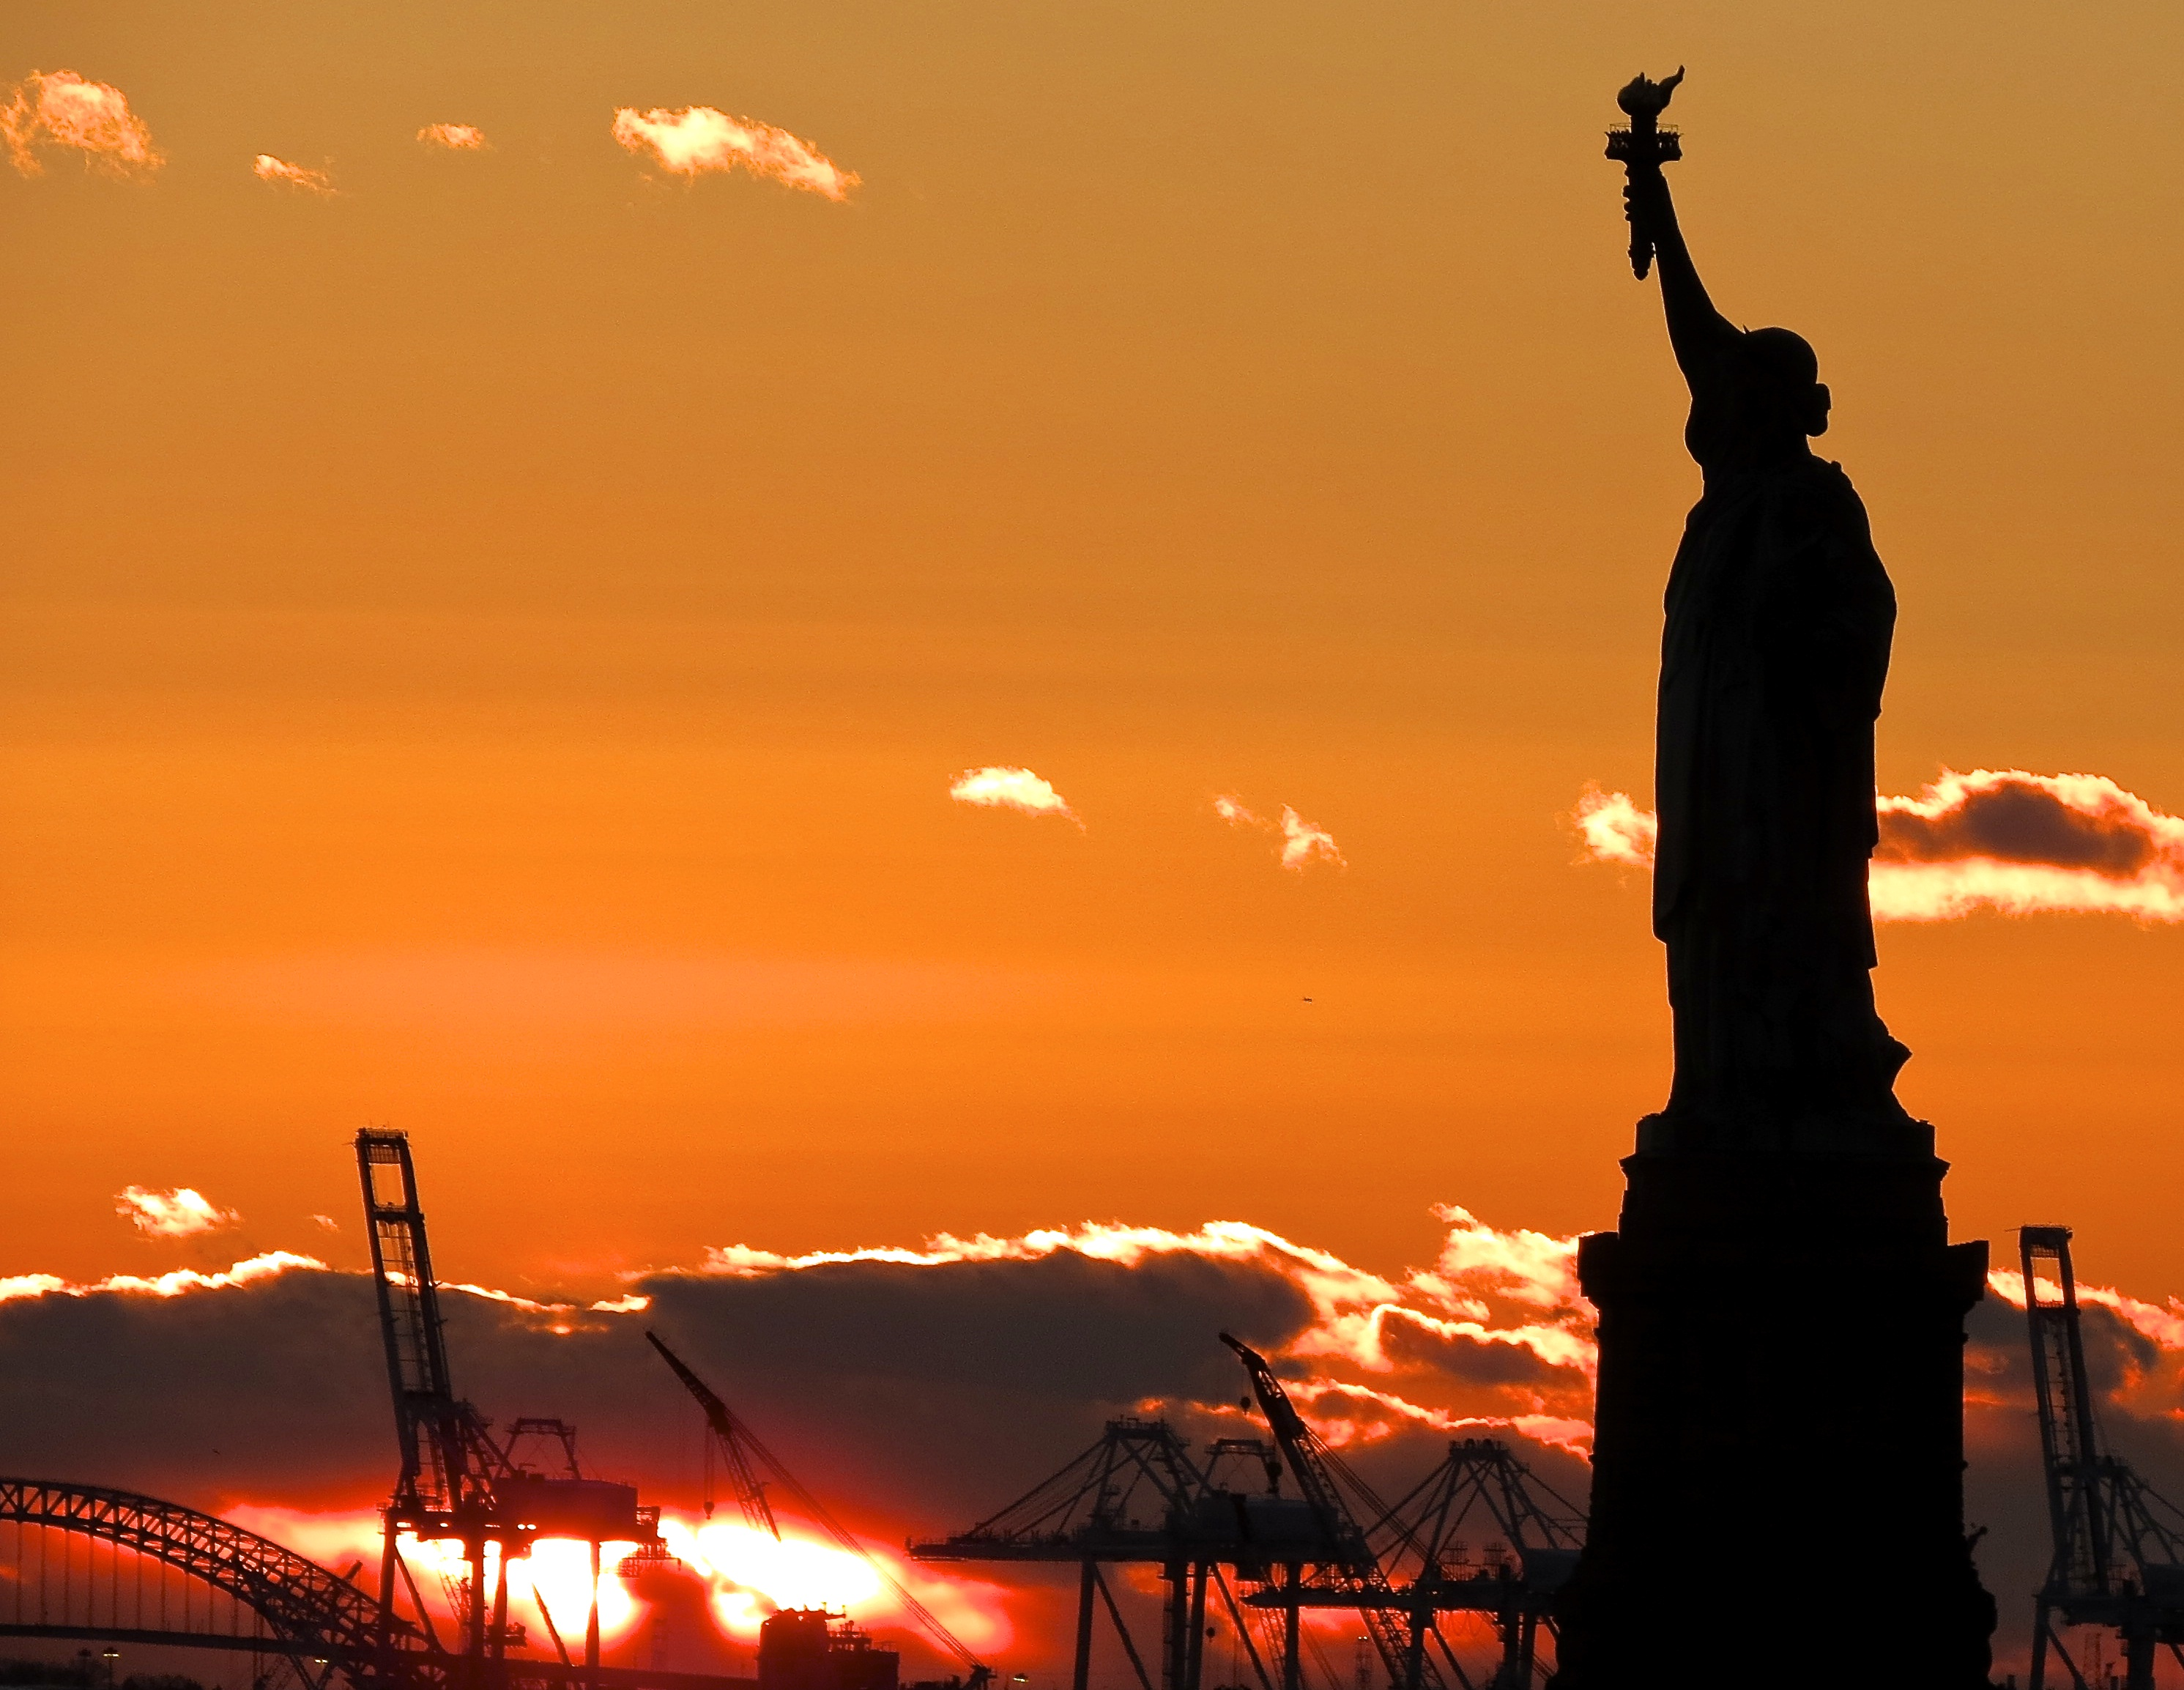 photo essay sailing from new york city acirc how do you measure the statue of liberty at sunset